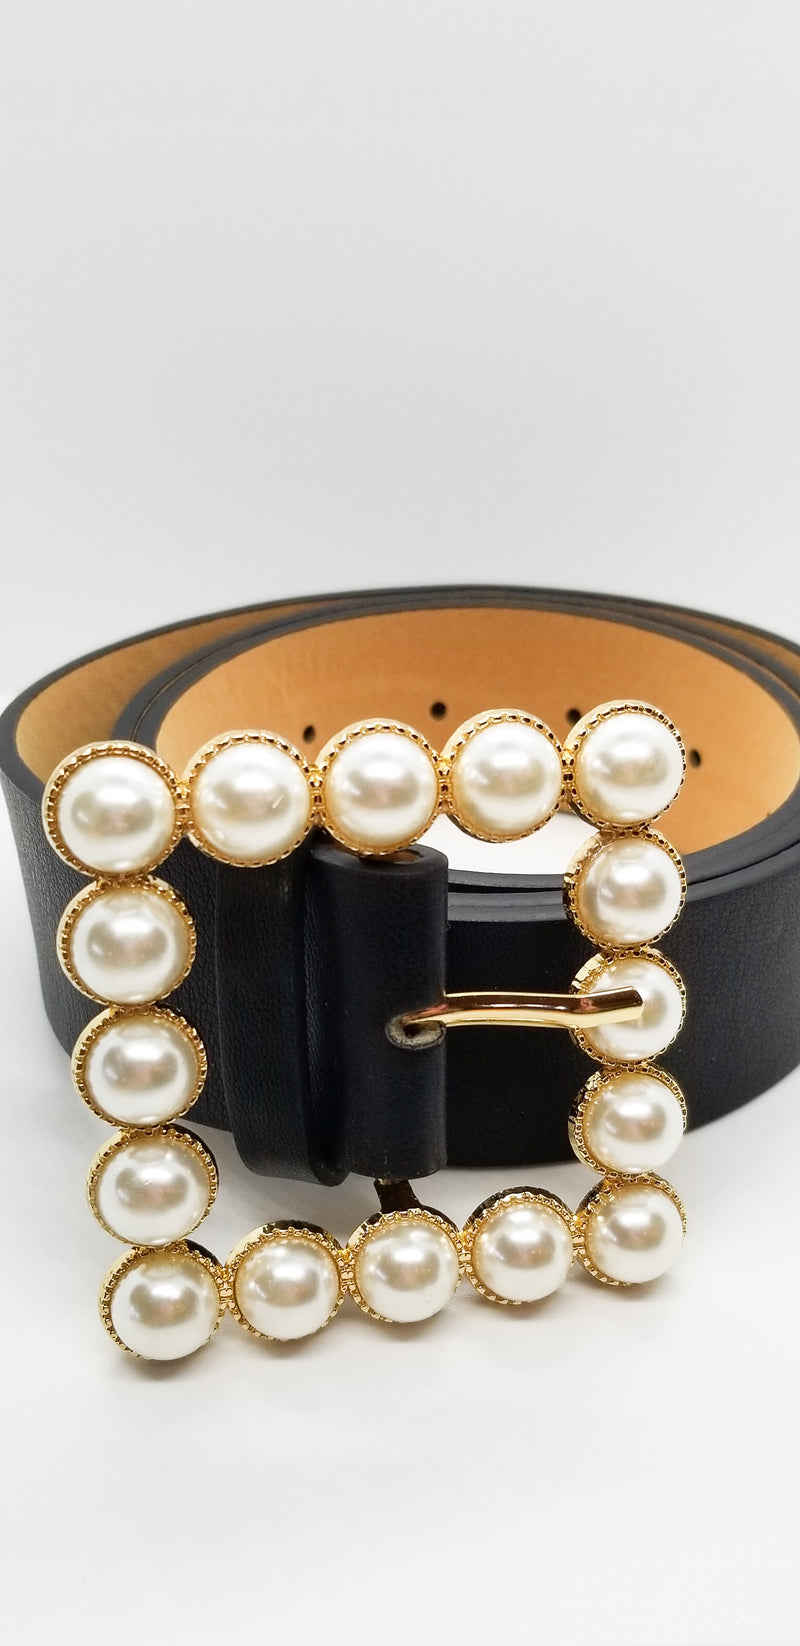 Pearl Faux Leather Belt - OWN YOUR ELEGANCE